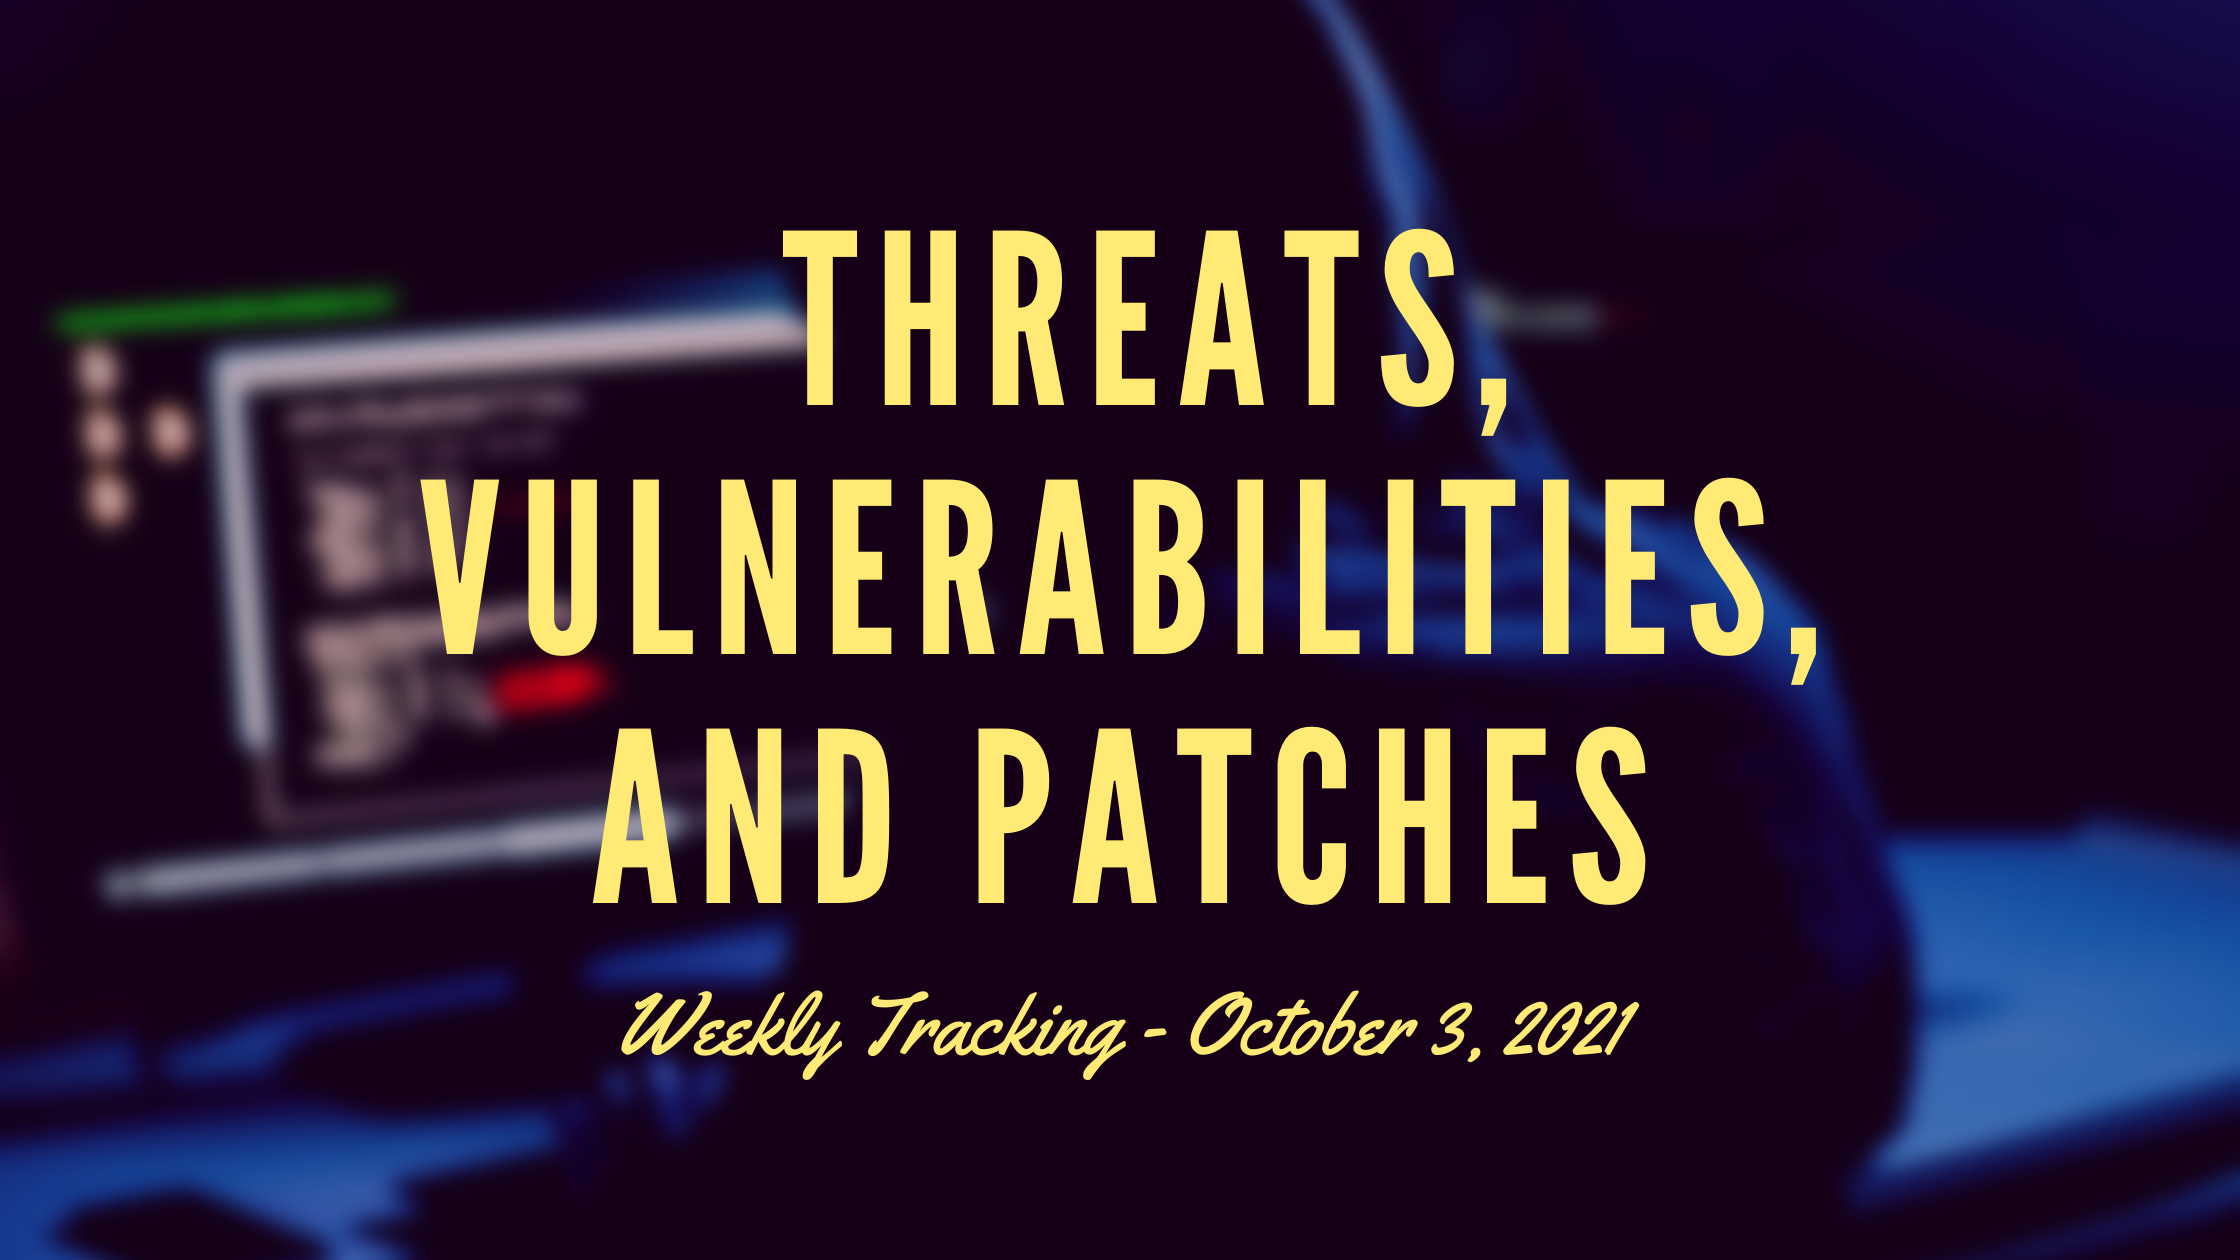 [Security Tip] Threats, Vulnerabilities, and Patches - Oct 3, 2021